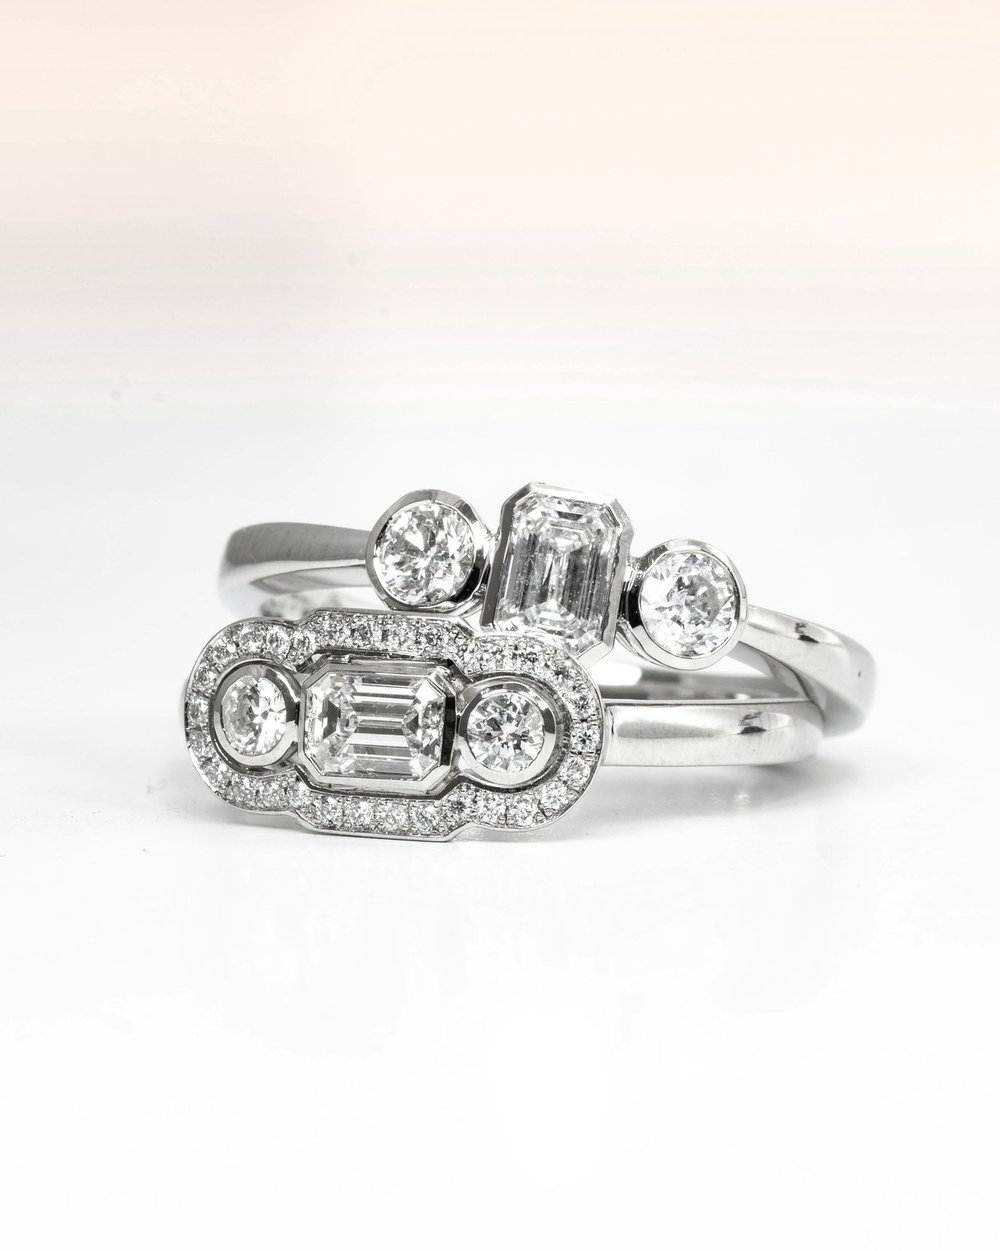 Two platinum mounted emerald cut and round cut diamond set rings. Made in Chichester, England.